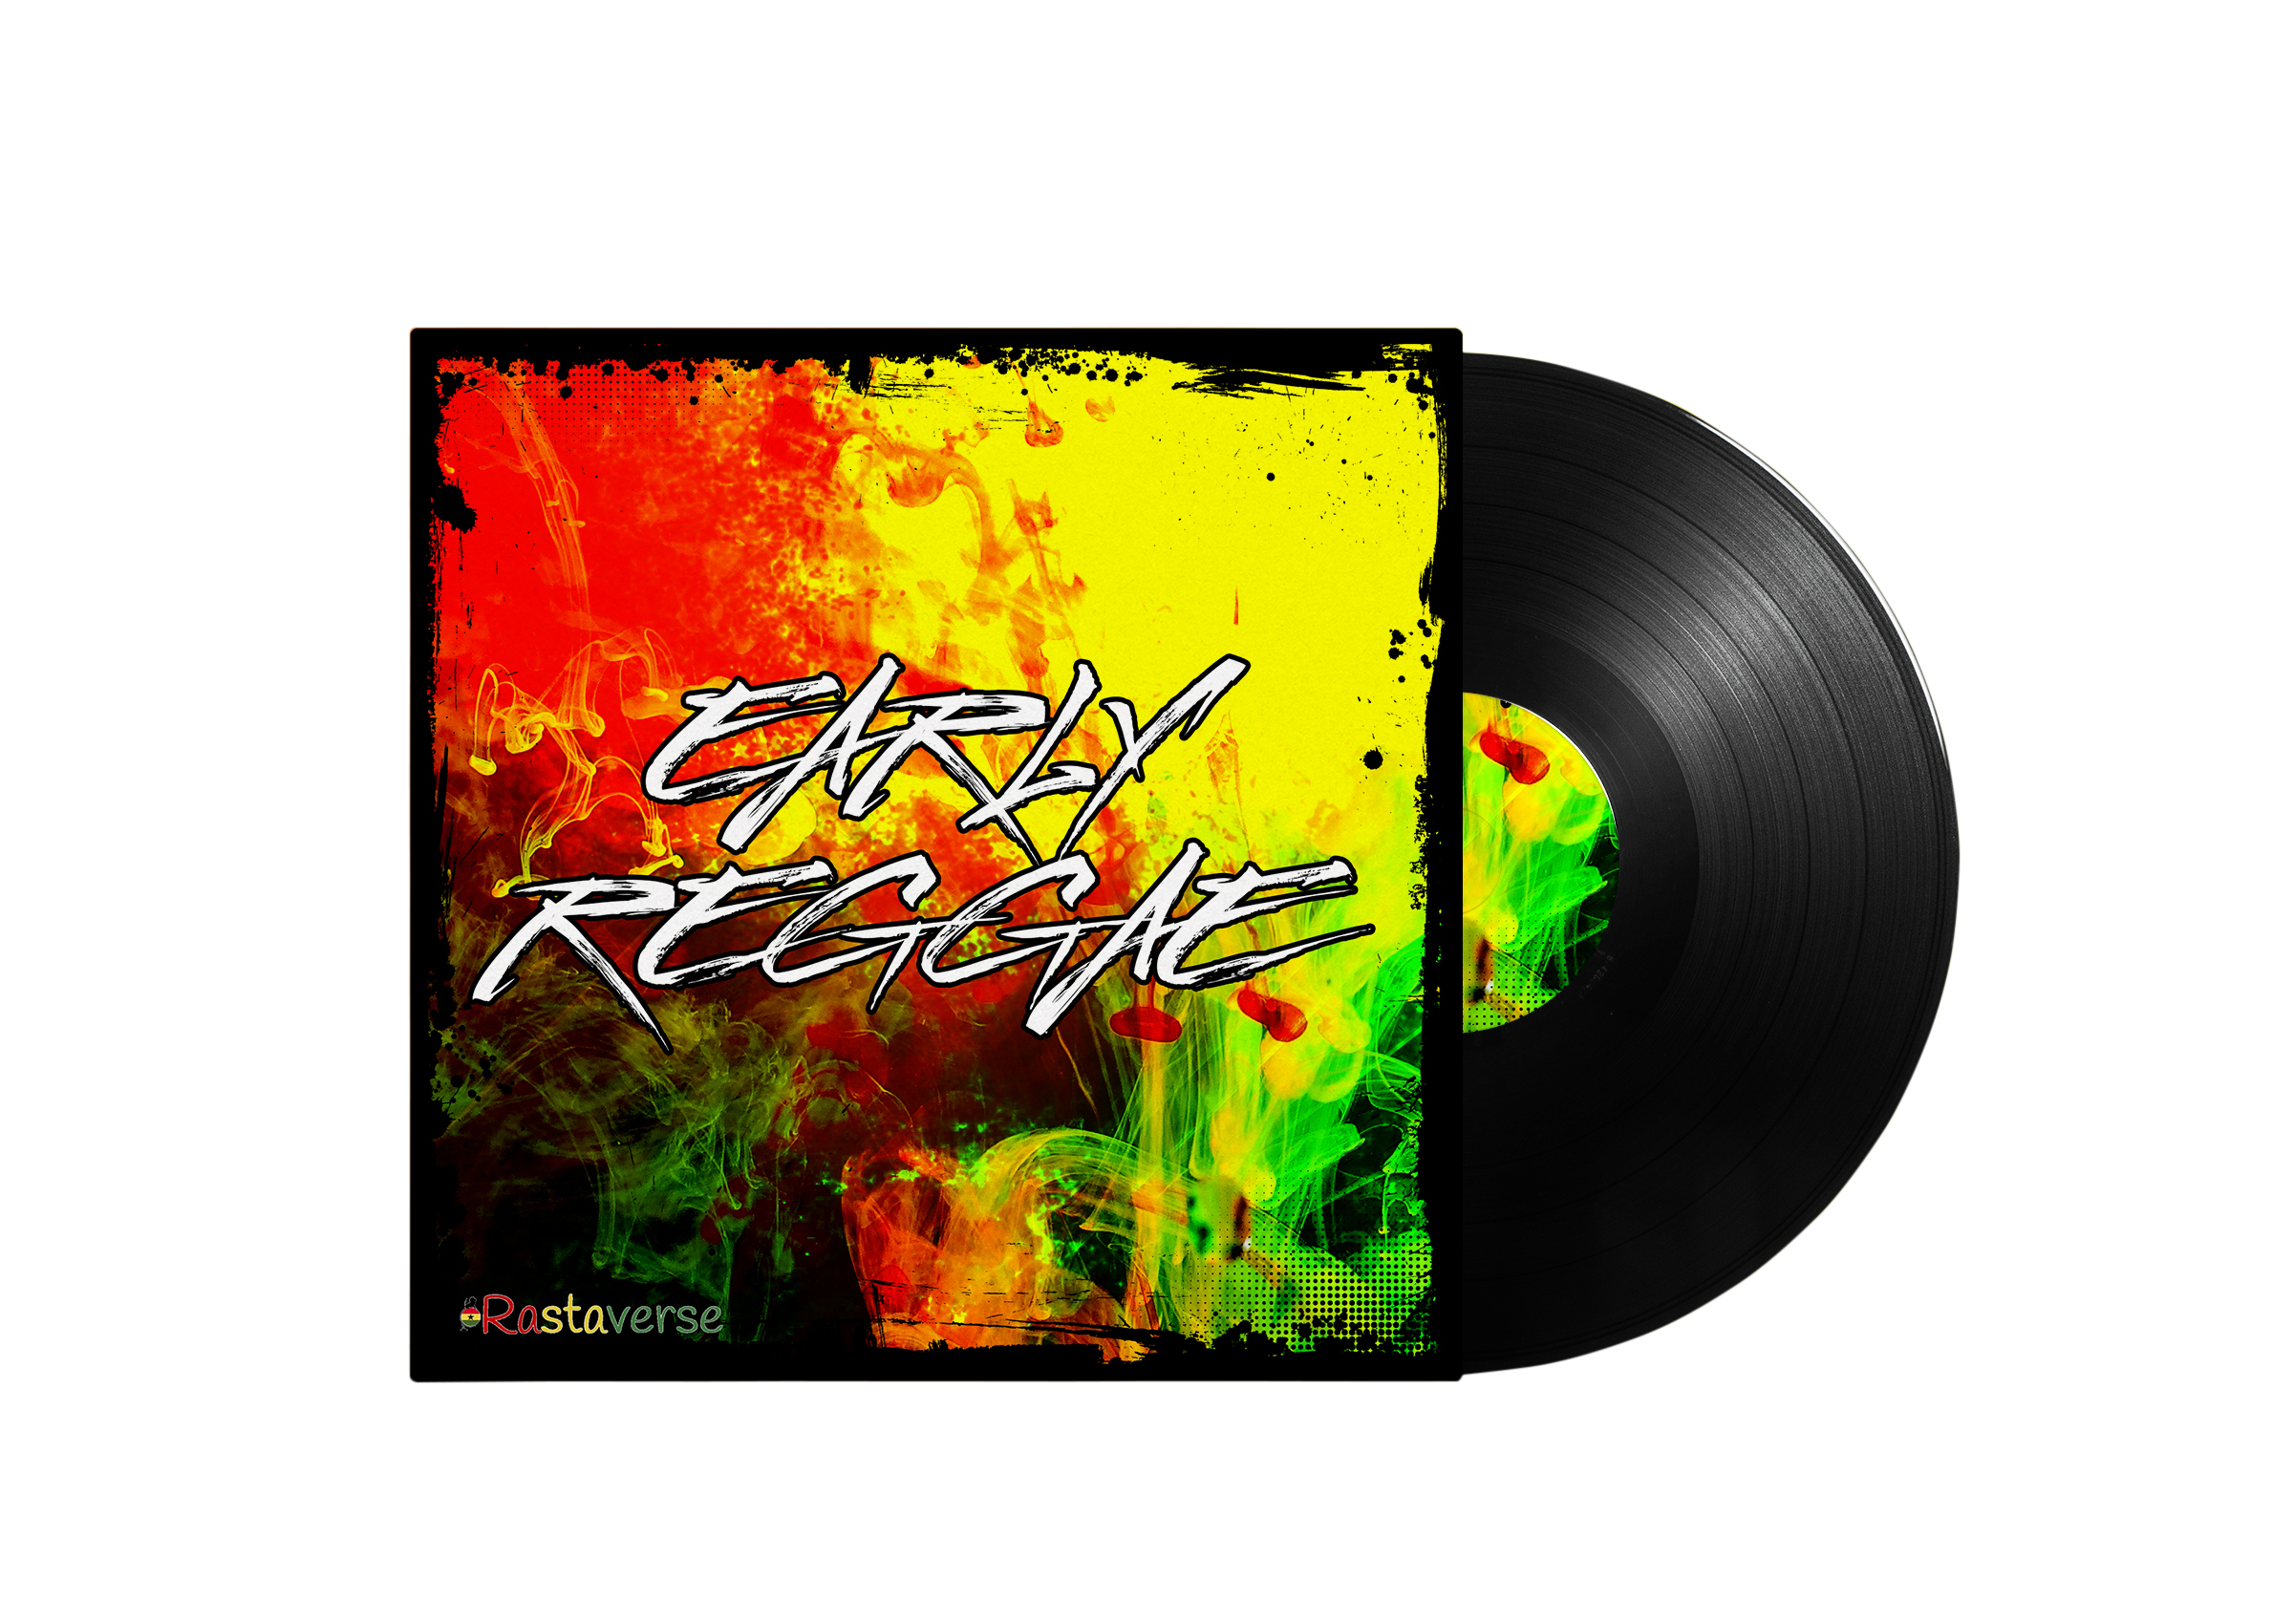 Rasta music Early Reggae